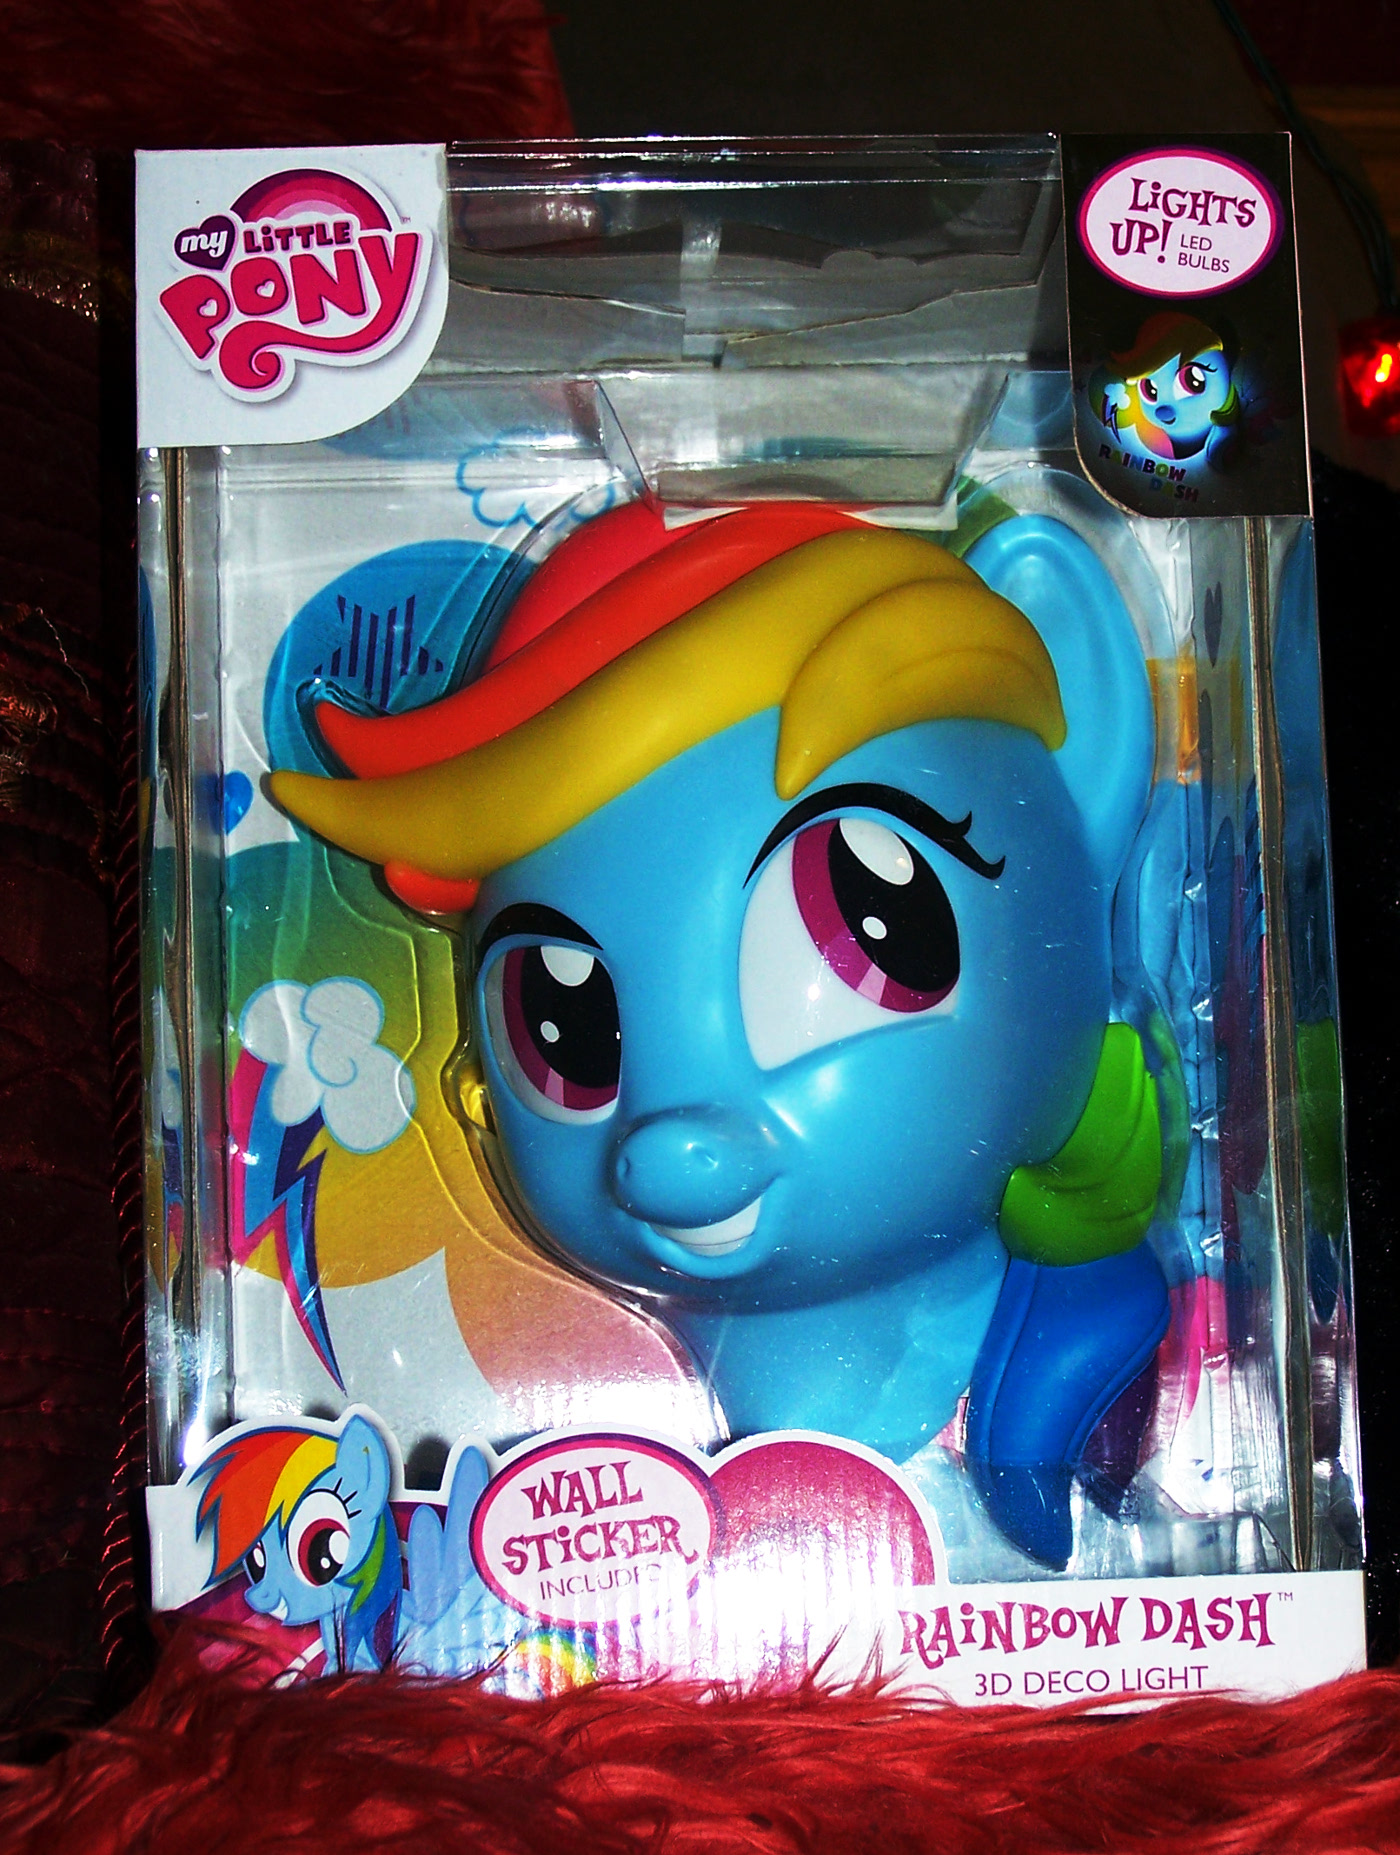 My Little Pony Rainbow Dash 3d light fx lights nightlight kids children gifts toys collect collectibles toy play friendship is magic decor bedroom